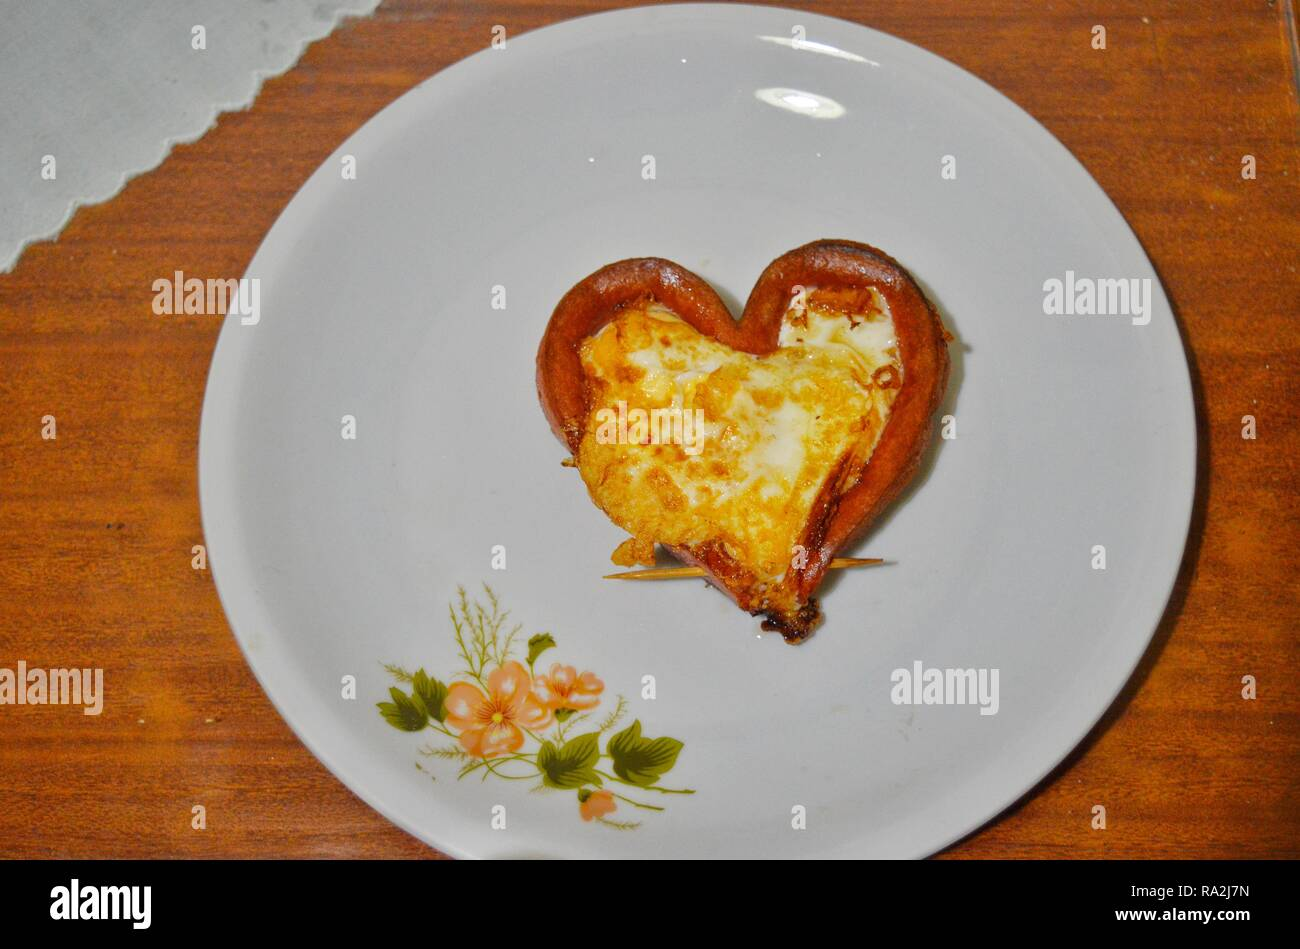 Heart shaped meal of eggs and a hot dog on a white plate - Stock Image